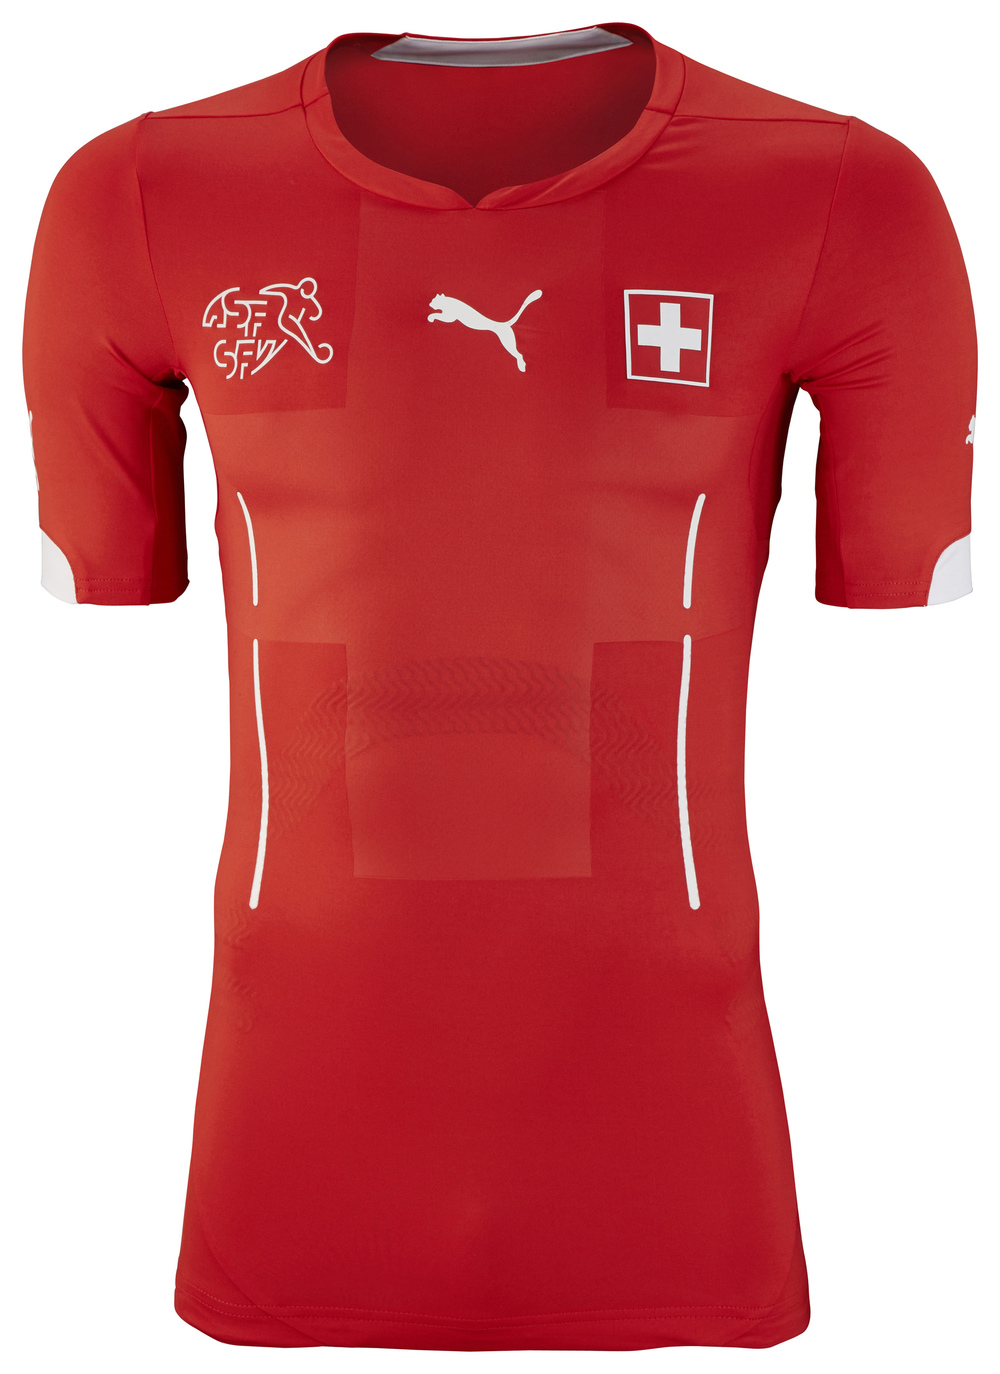 SS14 Switzerland Home Promo ACTV Shirt_701822_01.jpg